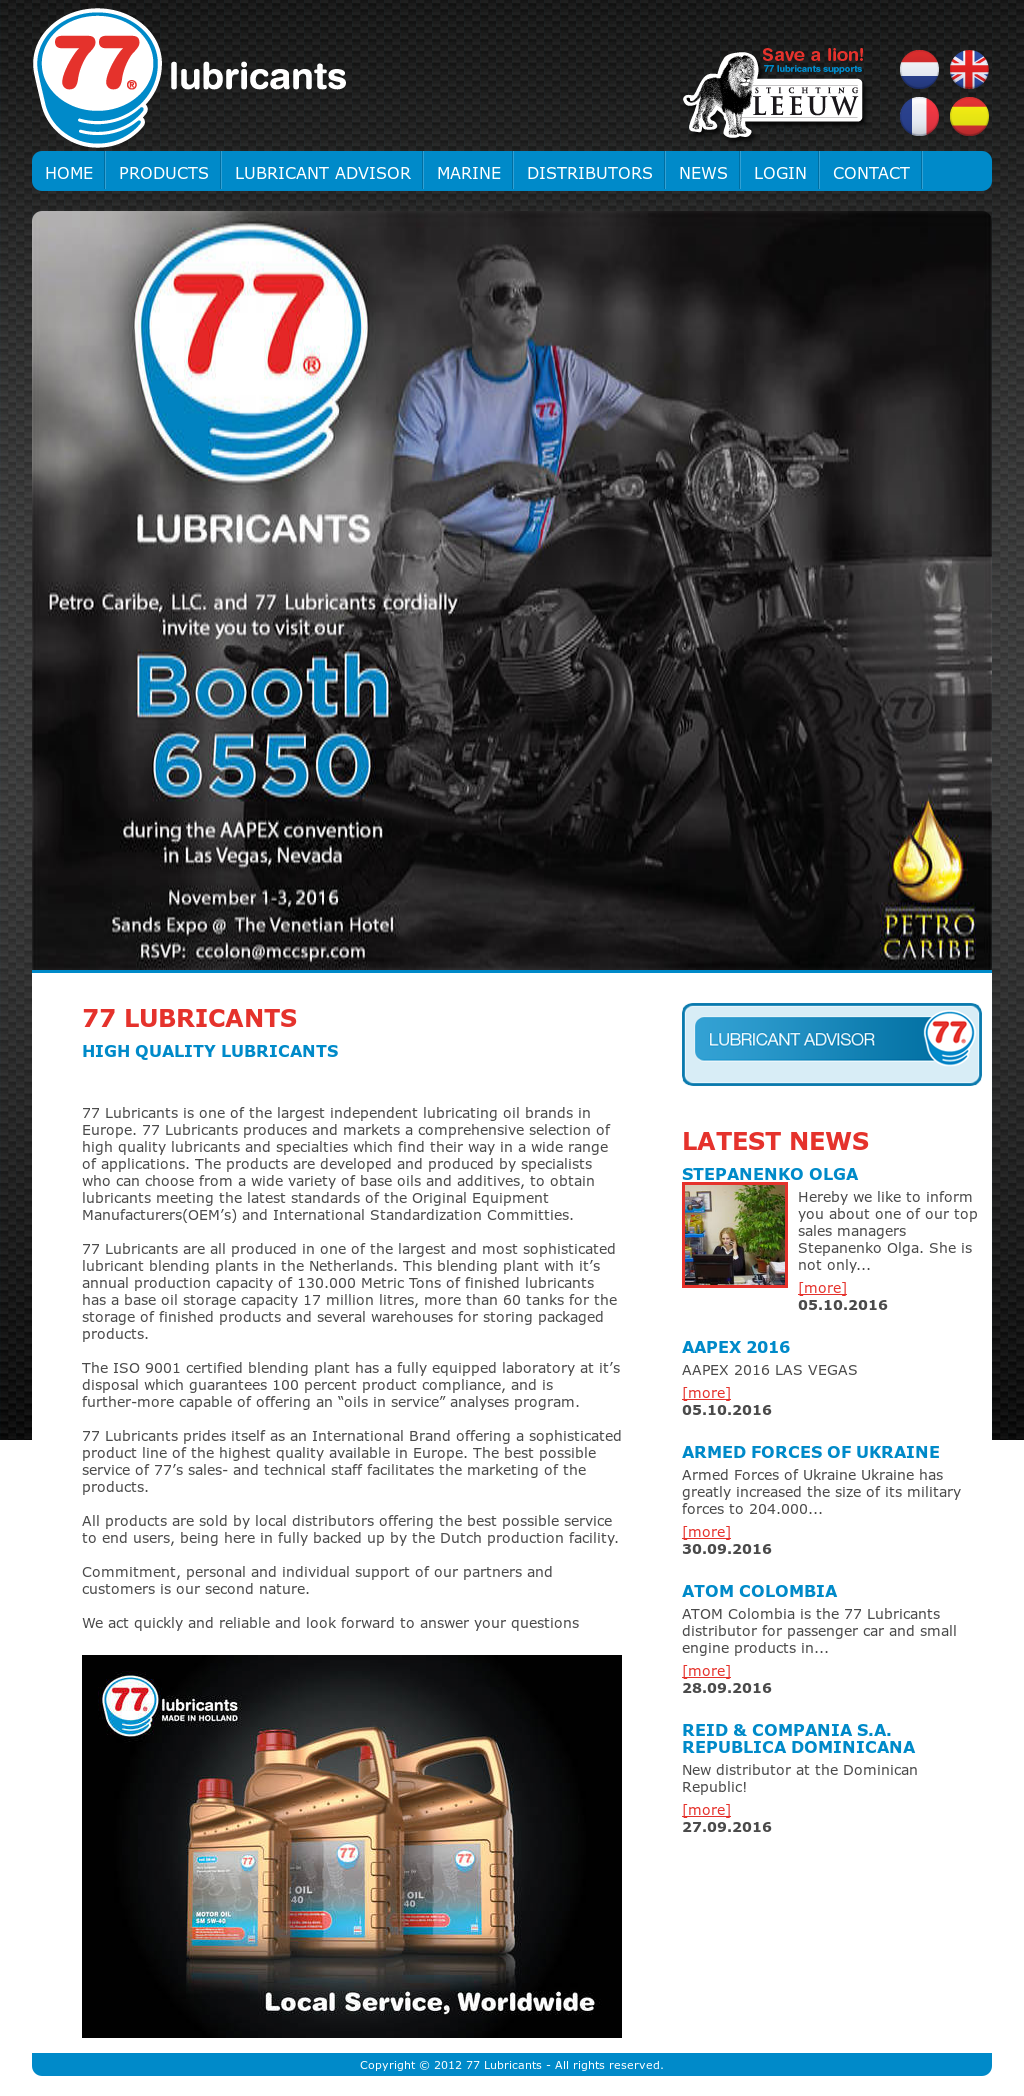 77 Lubricants Competitors, Revenue and Employees - Owler Company Profile